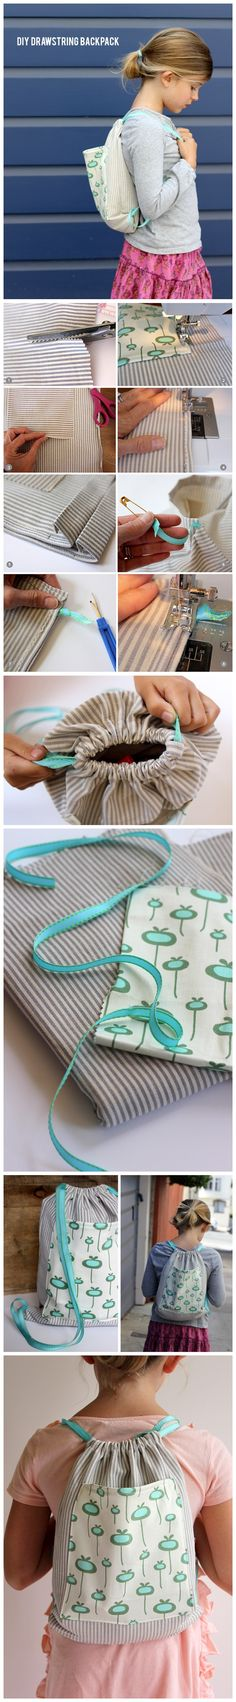 How To #Diy #Drawstring #Backpack #Tutorial